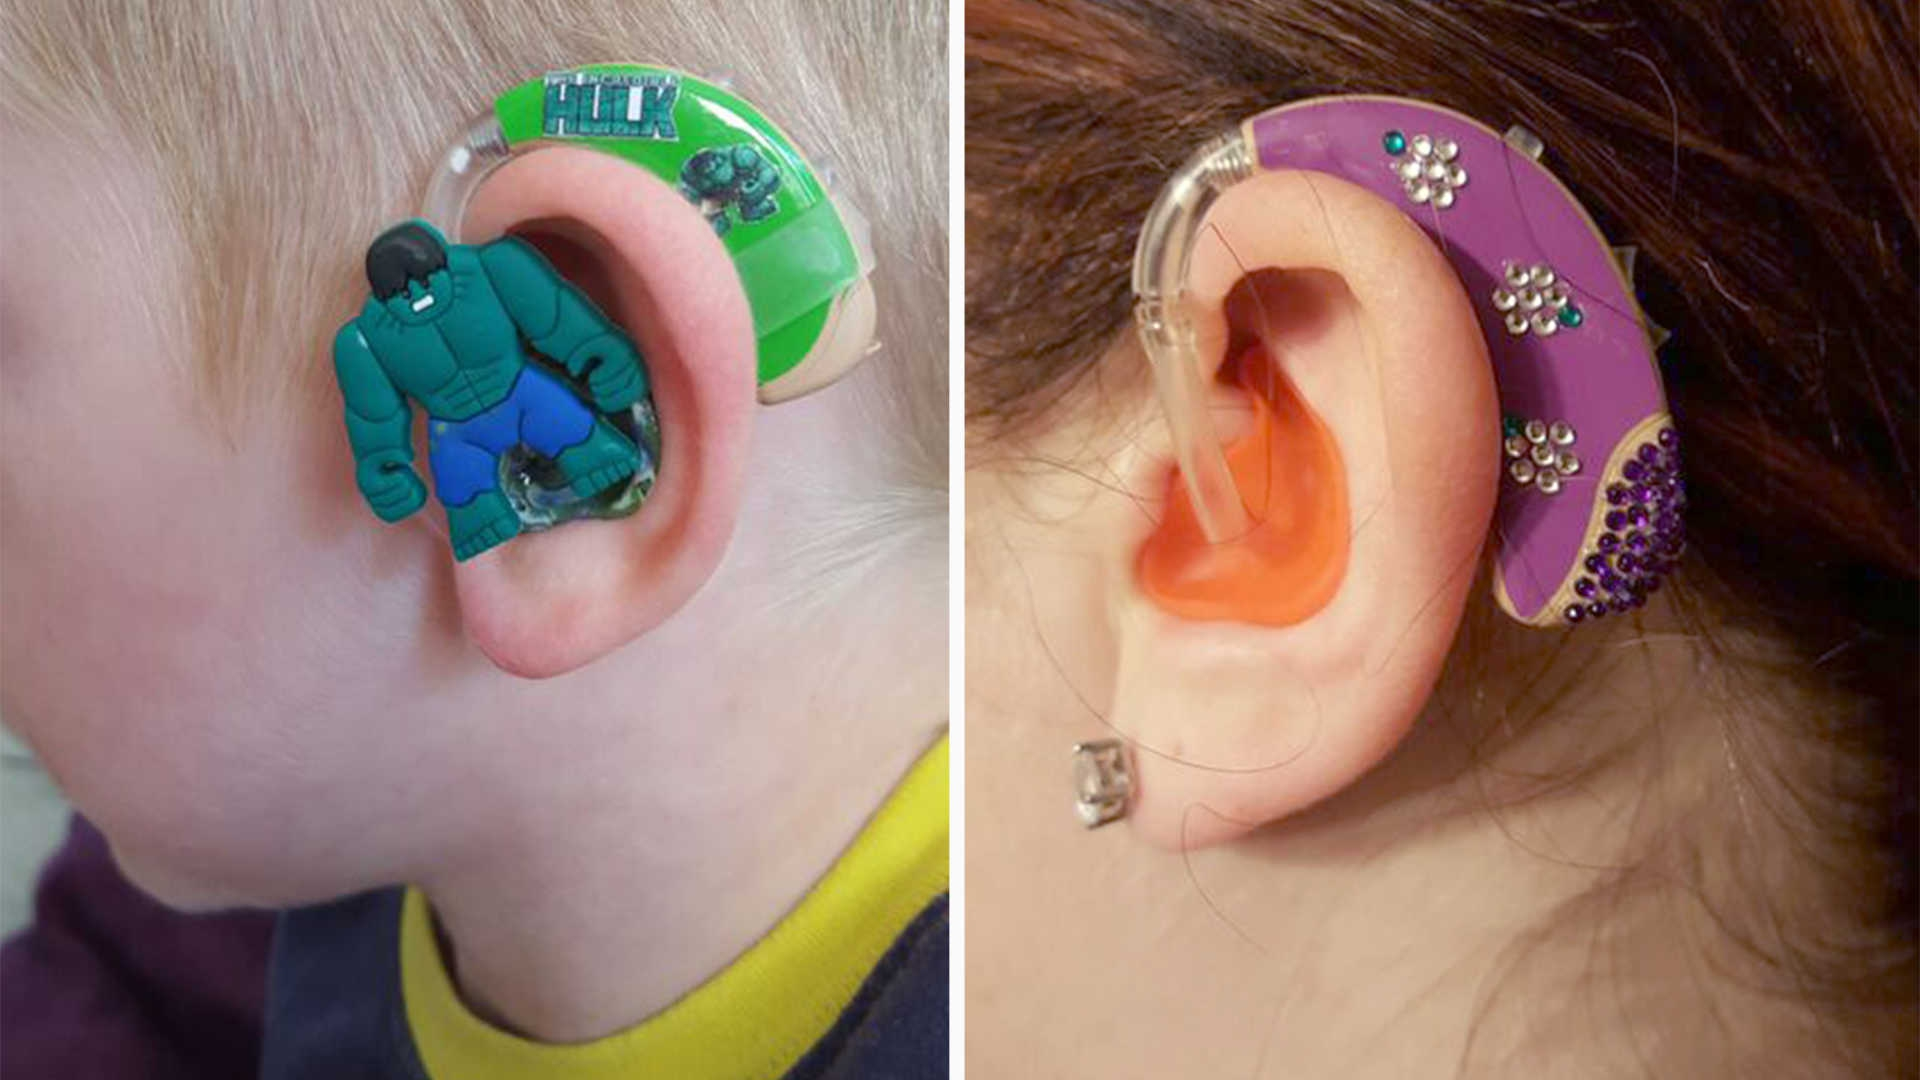 Designer Hearing Aids For Kids Thanks To This Supermom